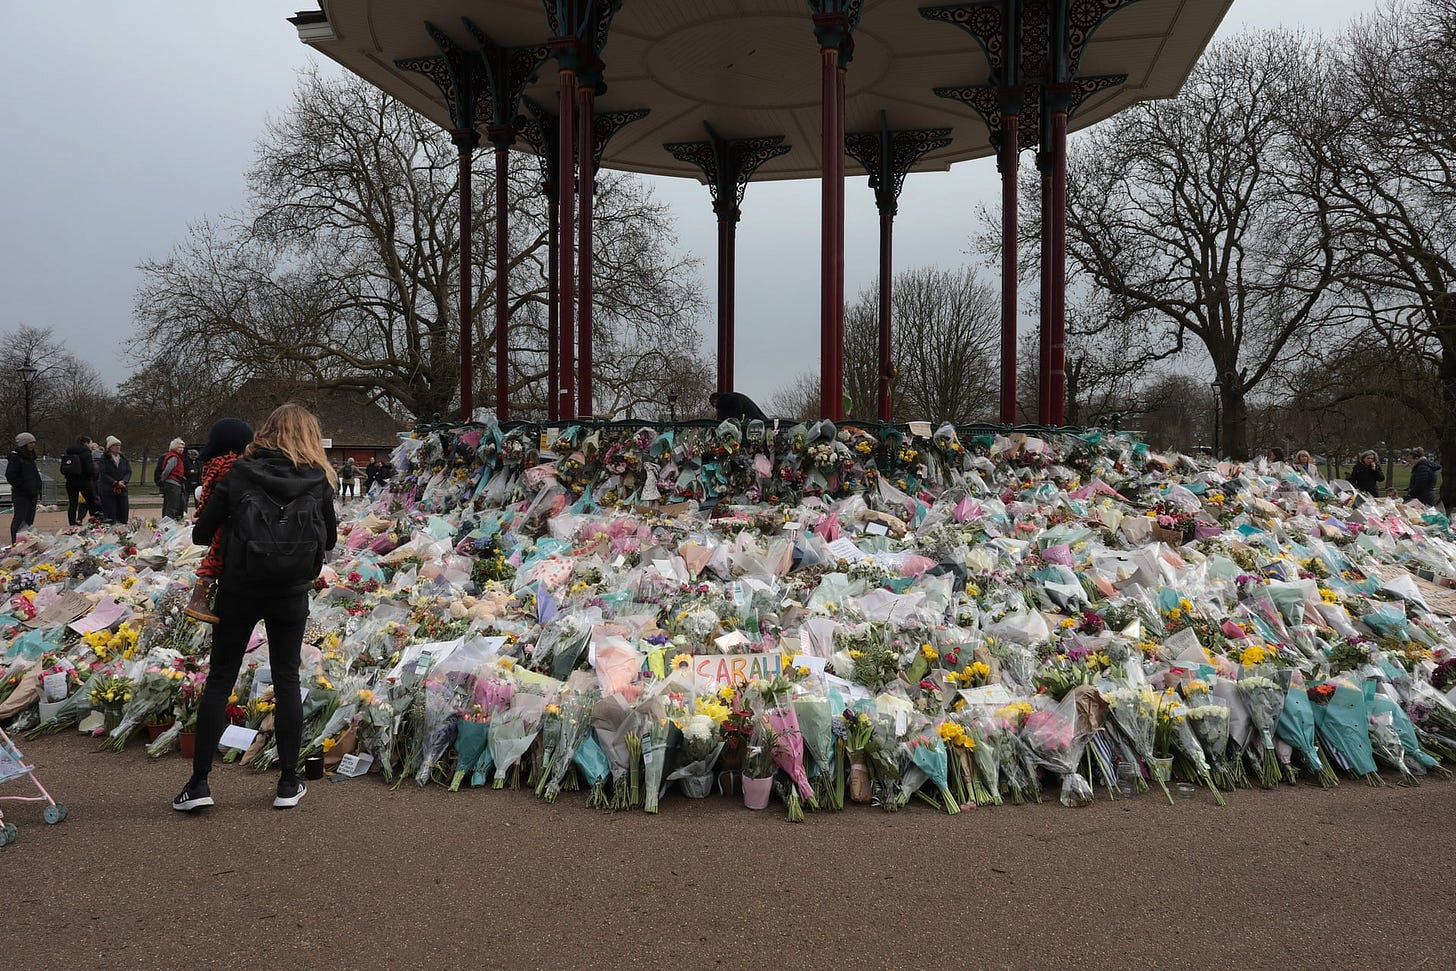 Flowers and tributes to Sarah Everard in Clapham Common. Photo by Guardian photographer Martin Godwin.